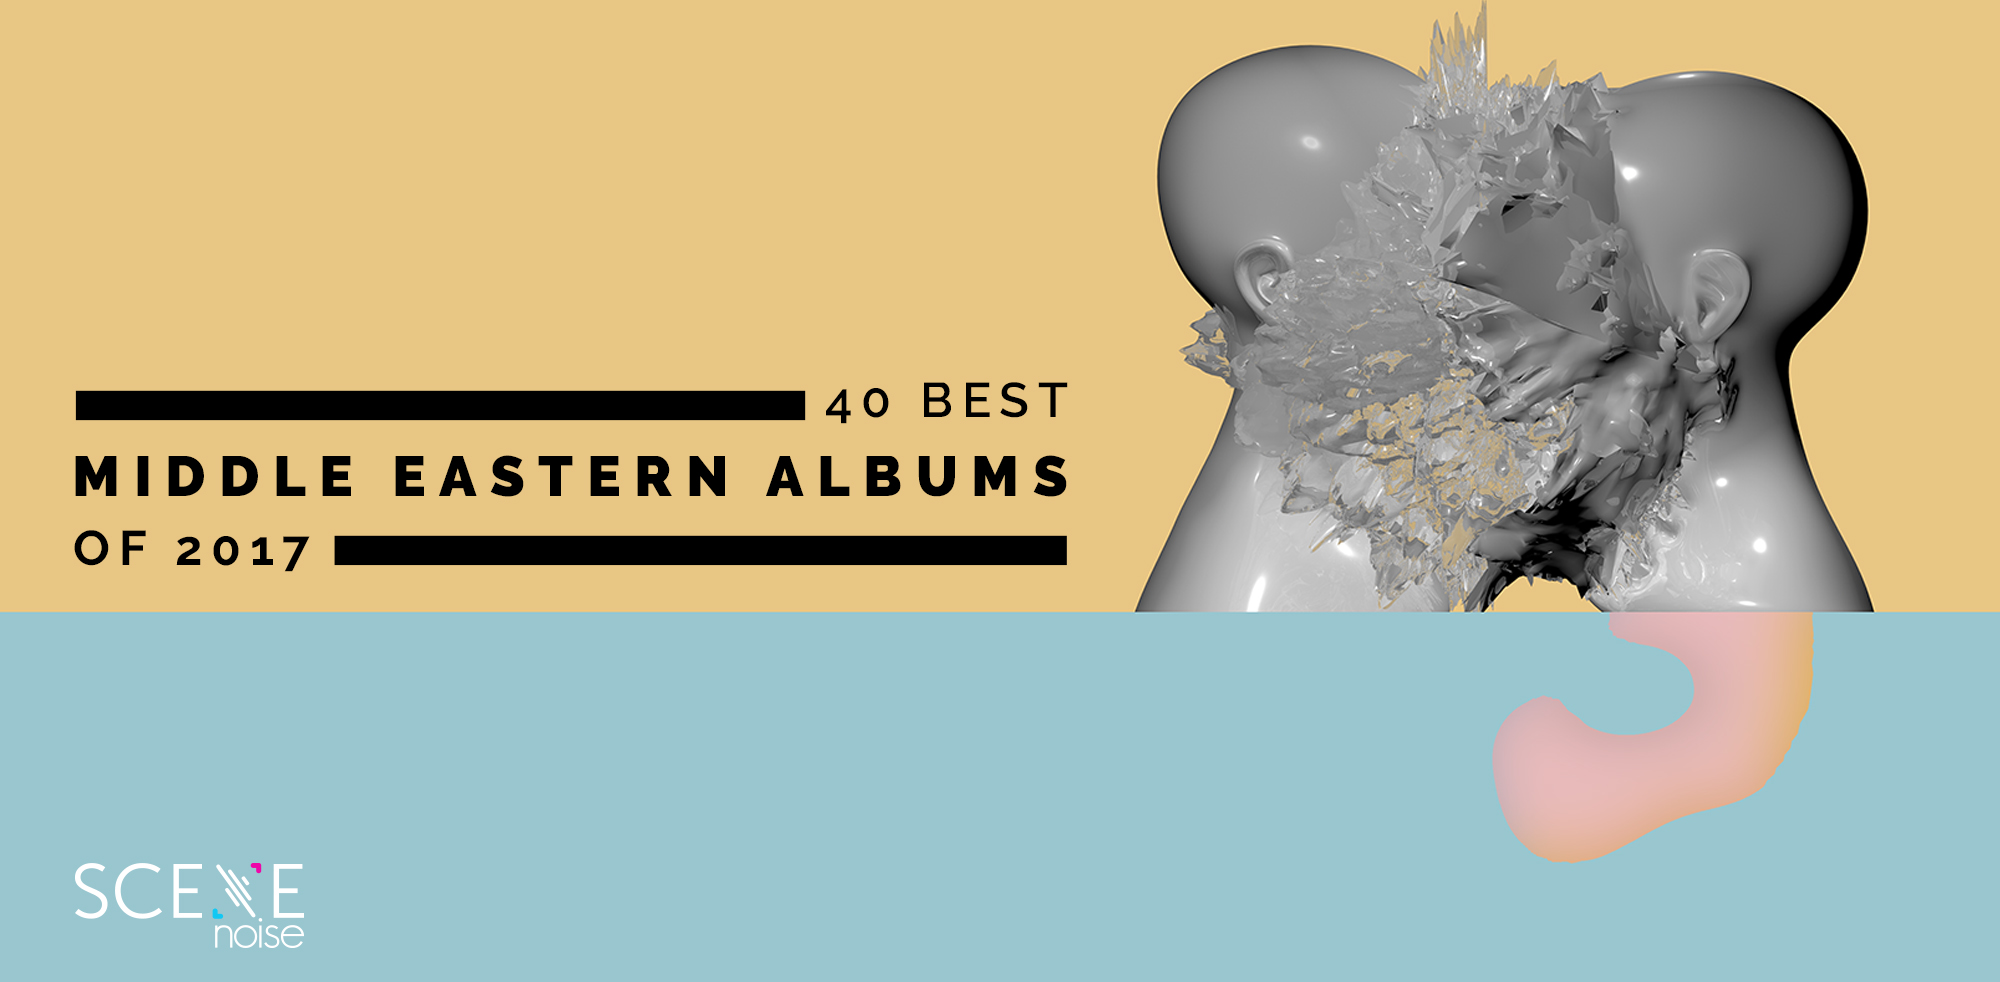 The 40 Best Middle Eastern Albums Of 2017